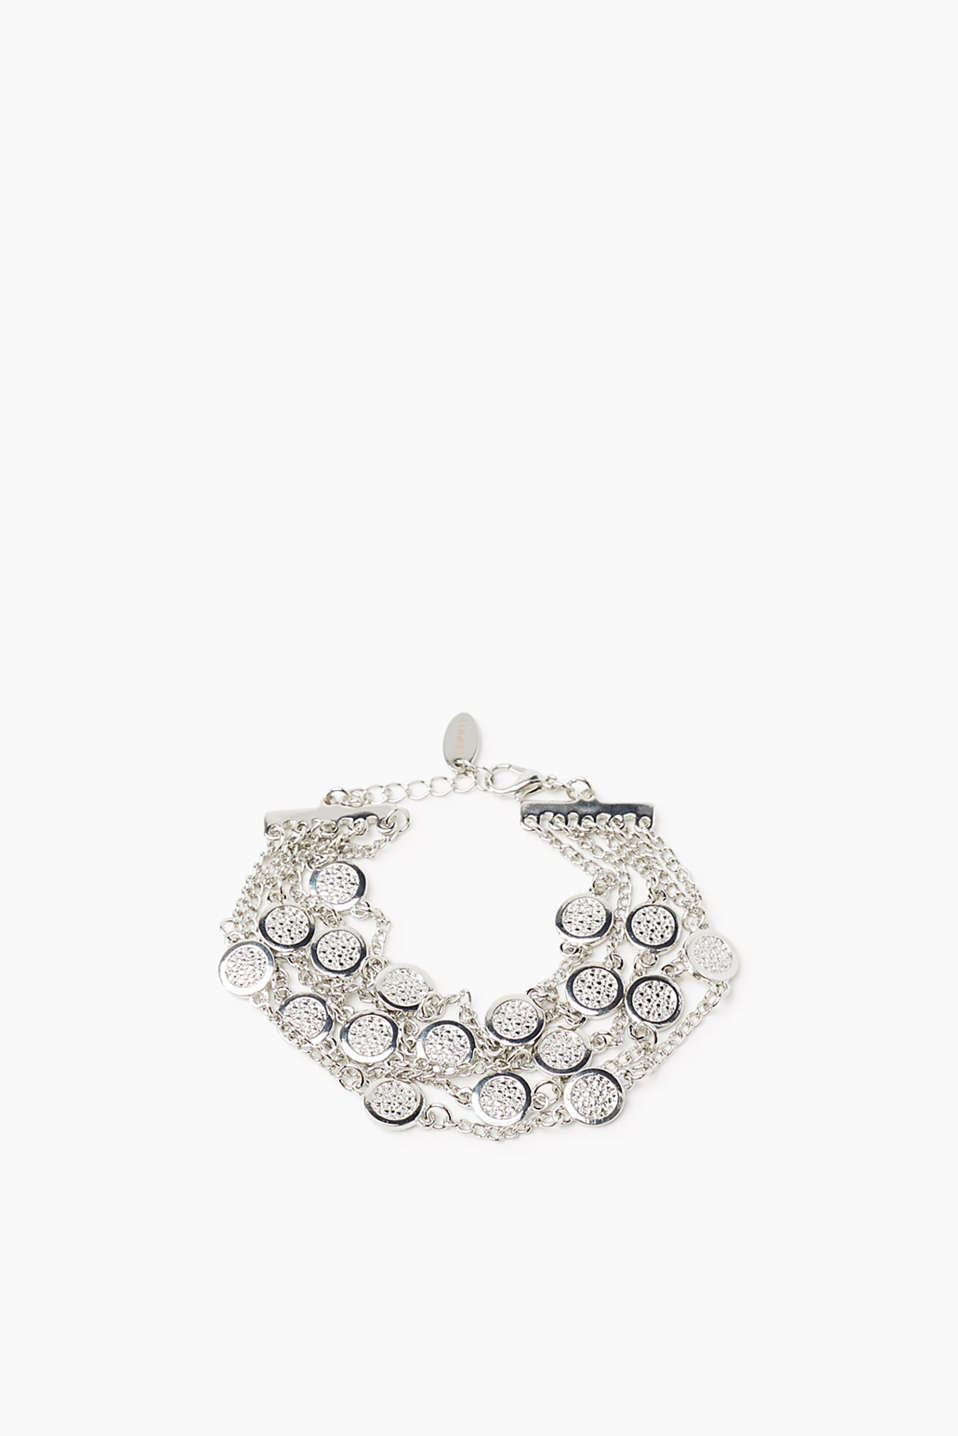 Esprit - Multi-strand bracelet made from silver metal